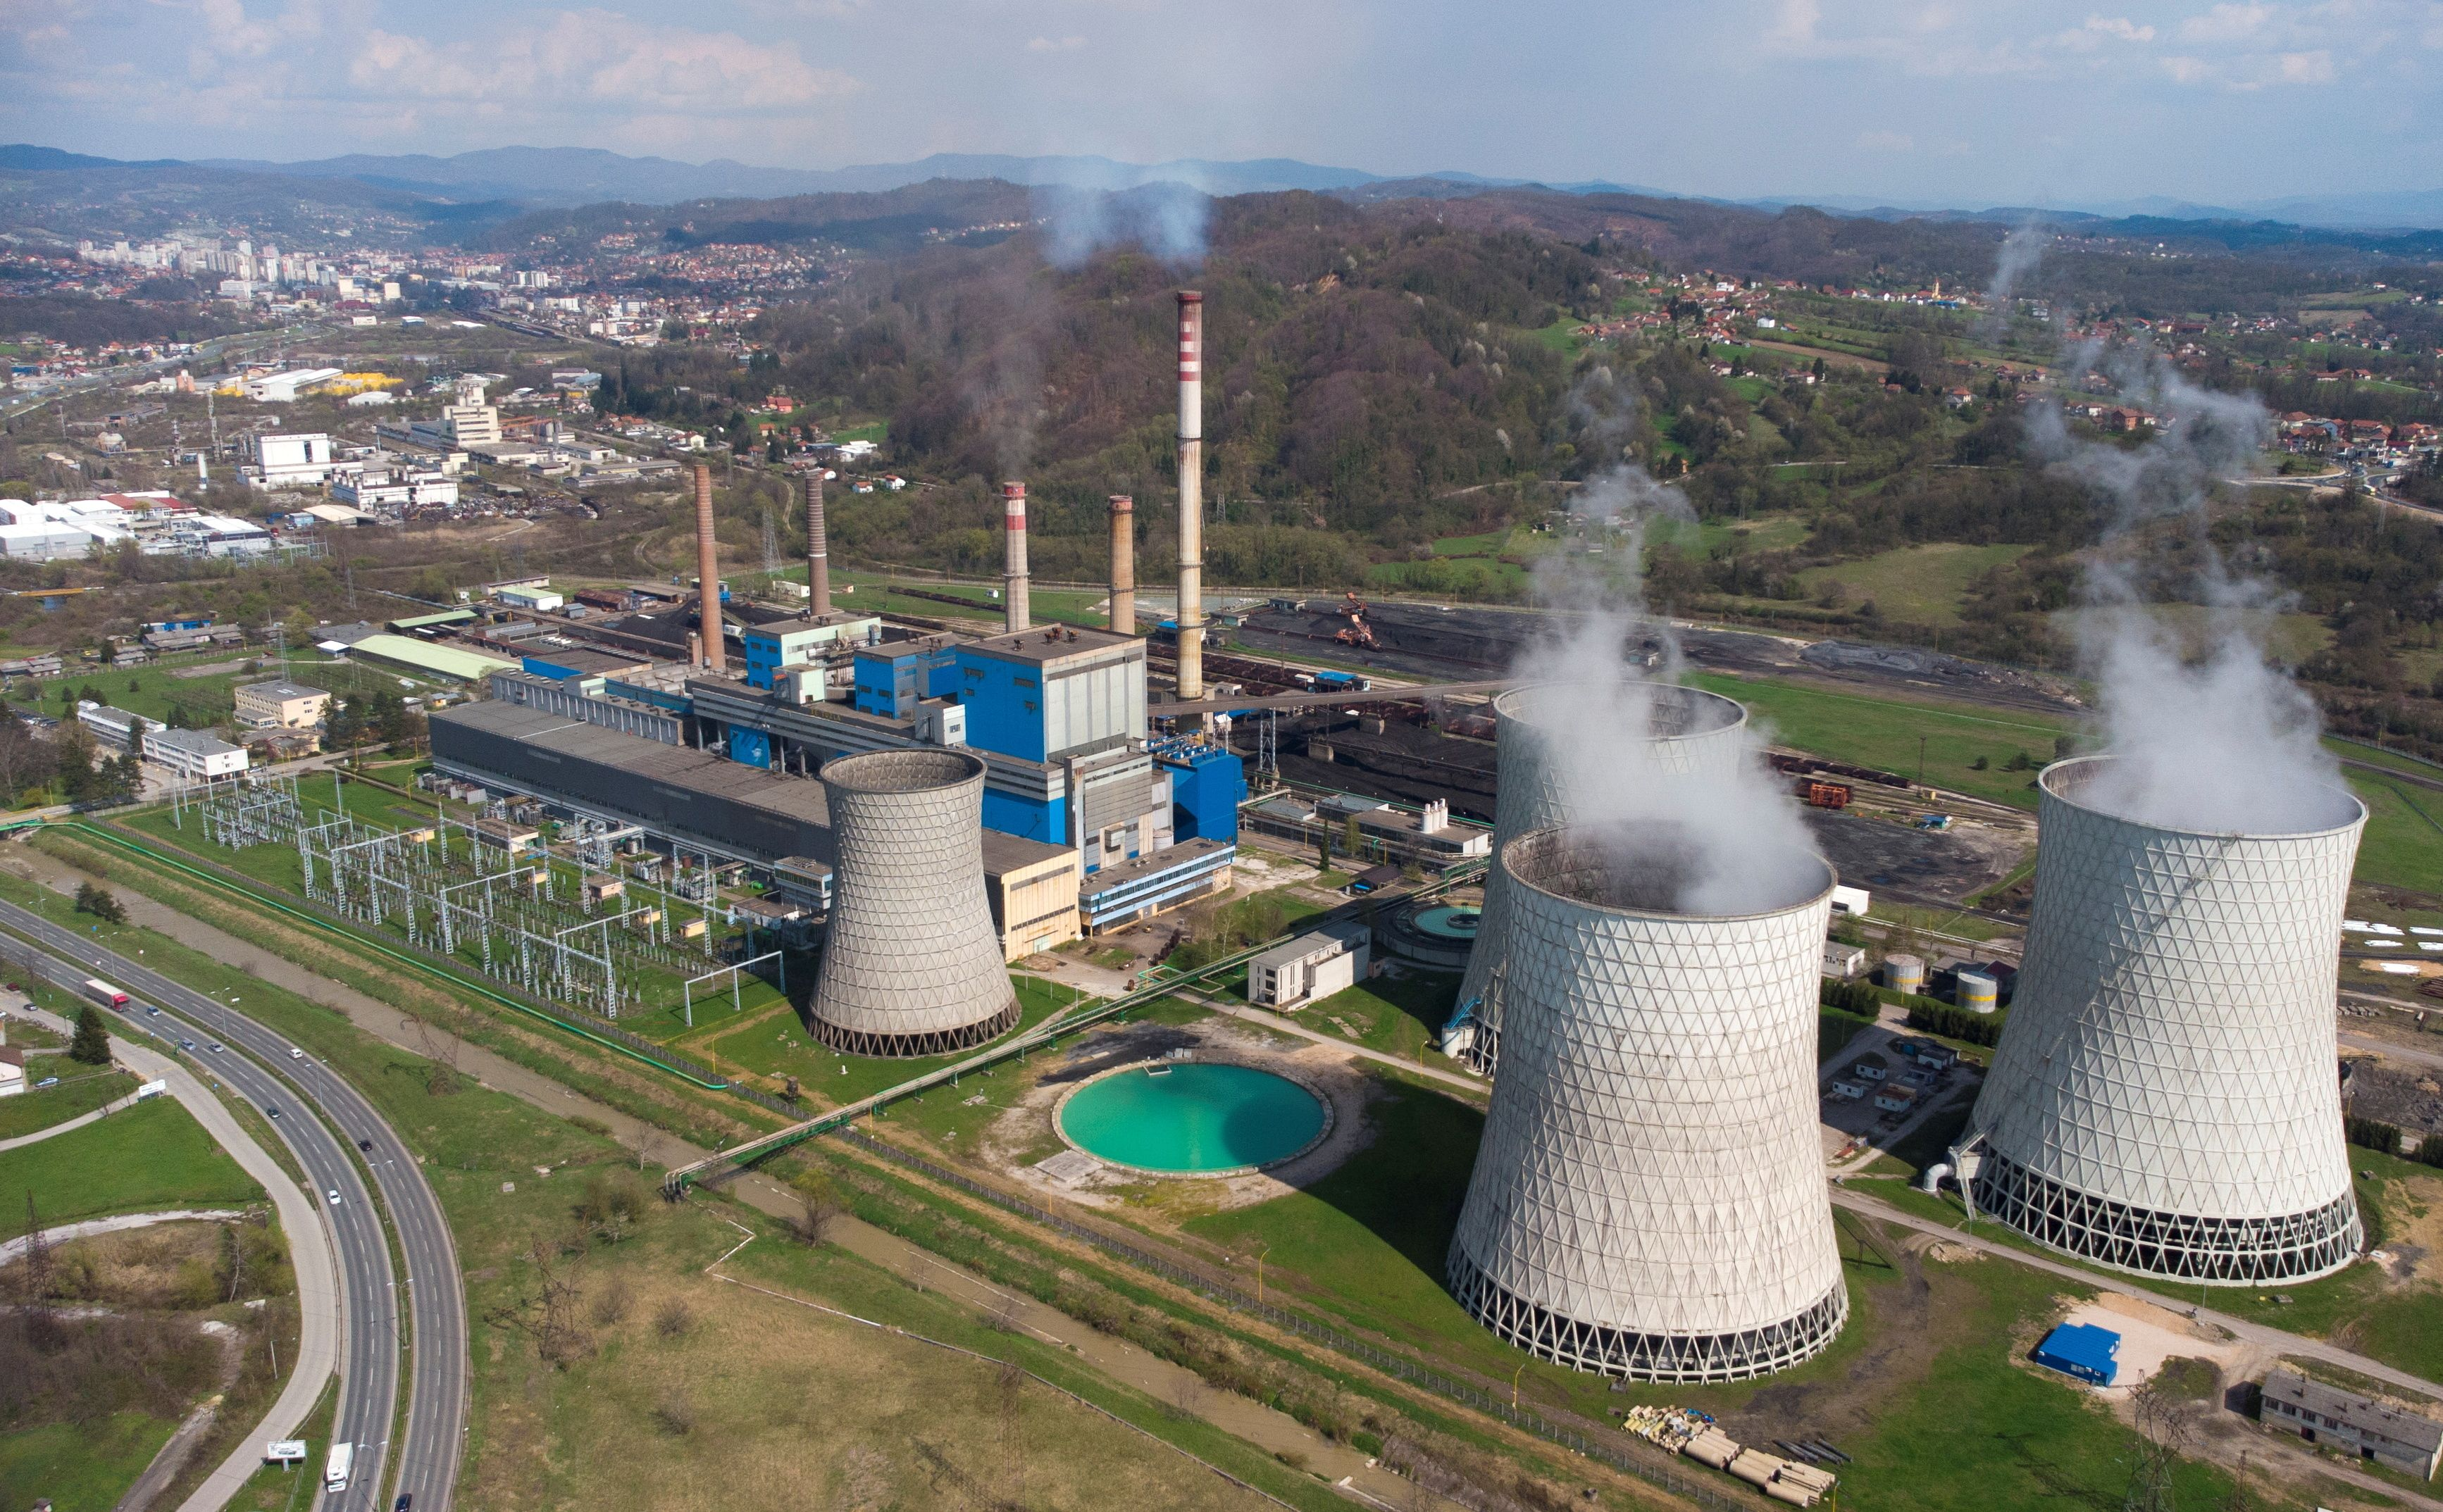 Aerial view of the thermal power plant in Tuzla, Bosnia and Herzegovina April 21, 2021. REUTERS/Dado Ruvic/File Photo